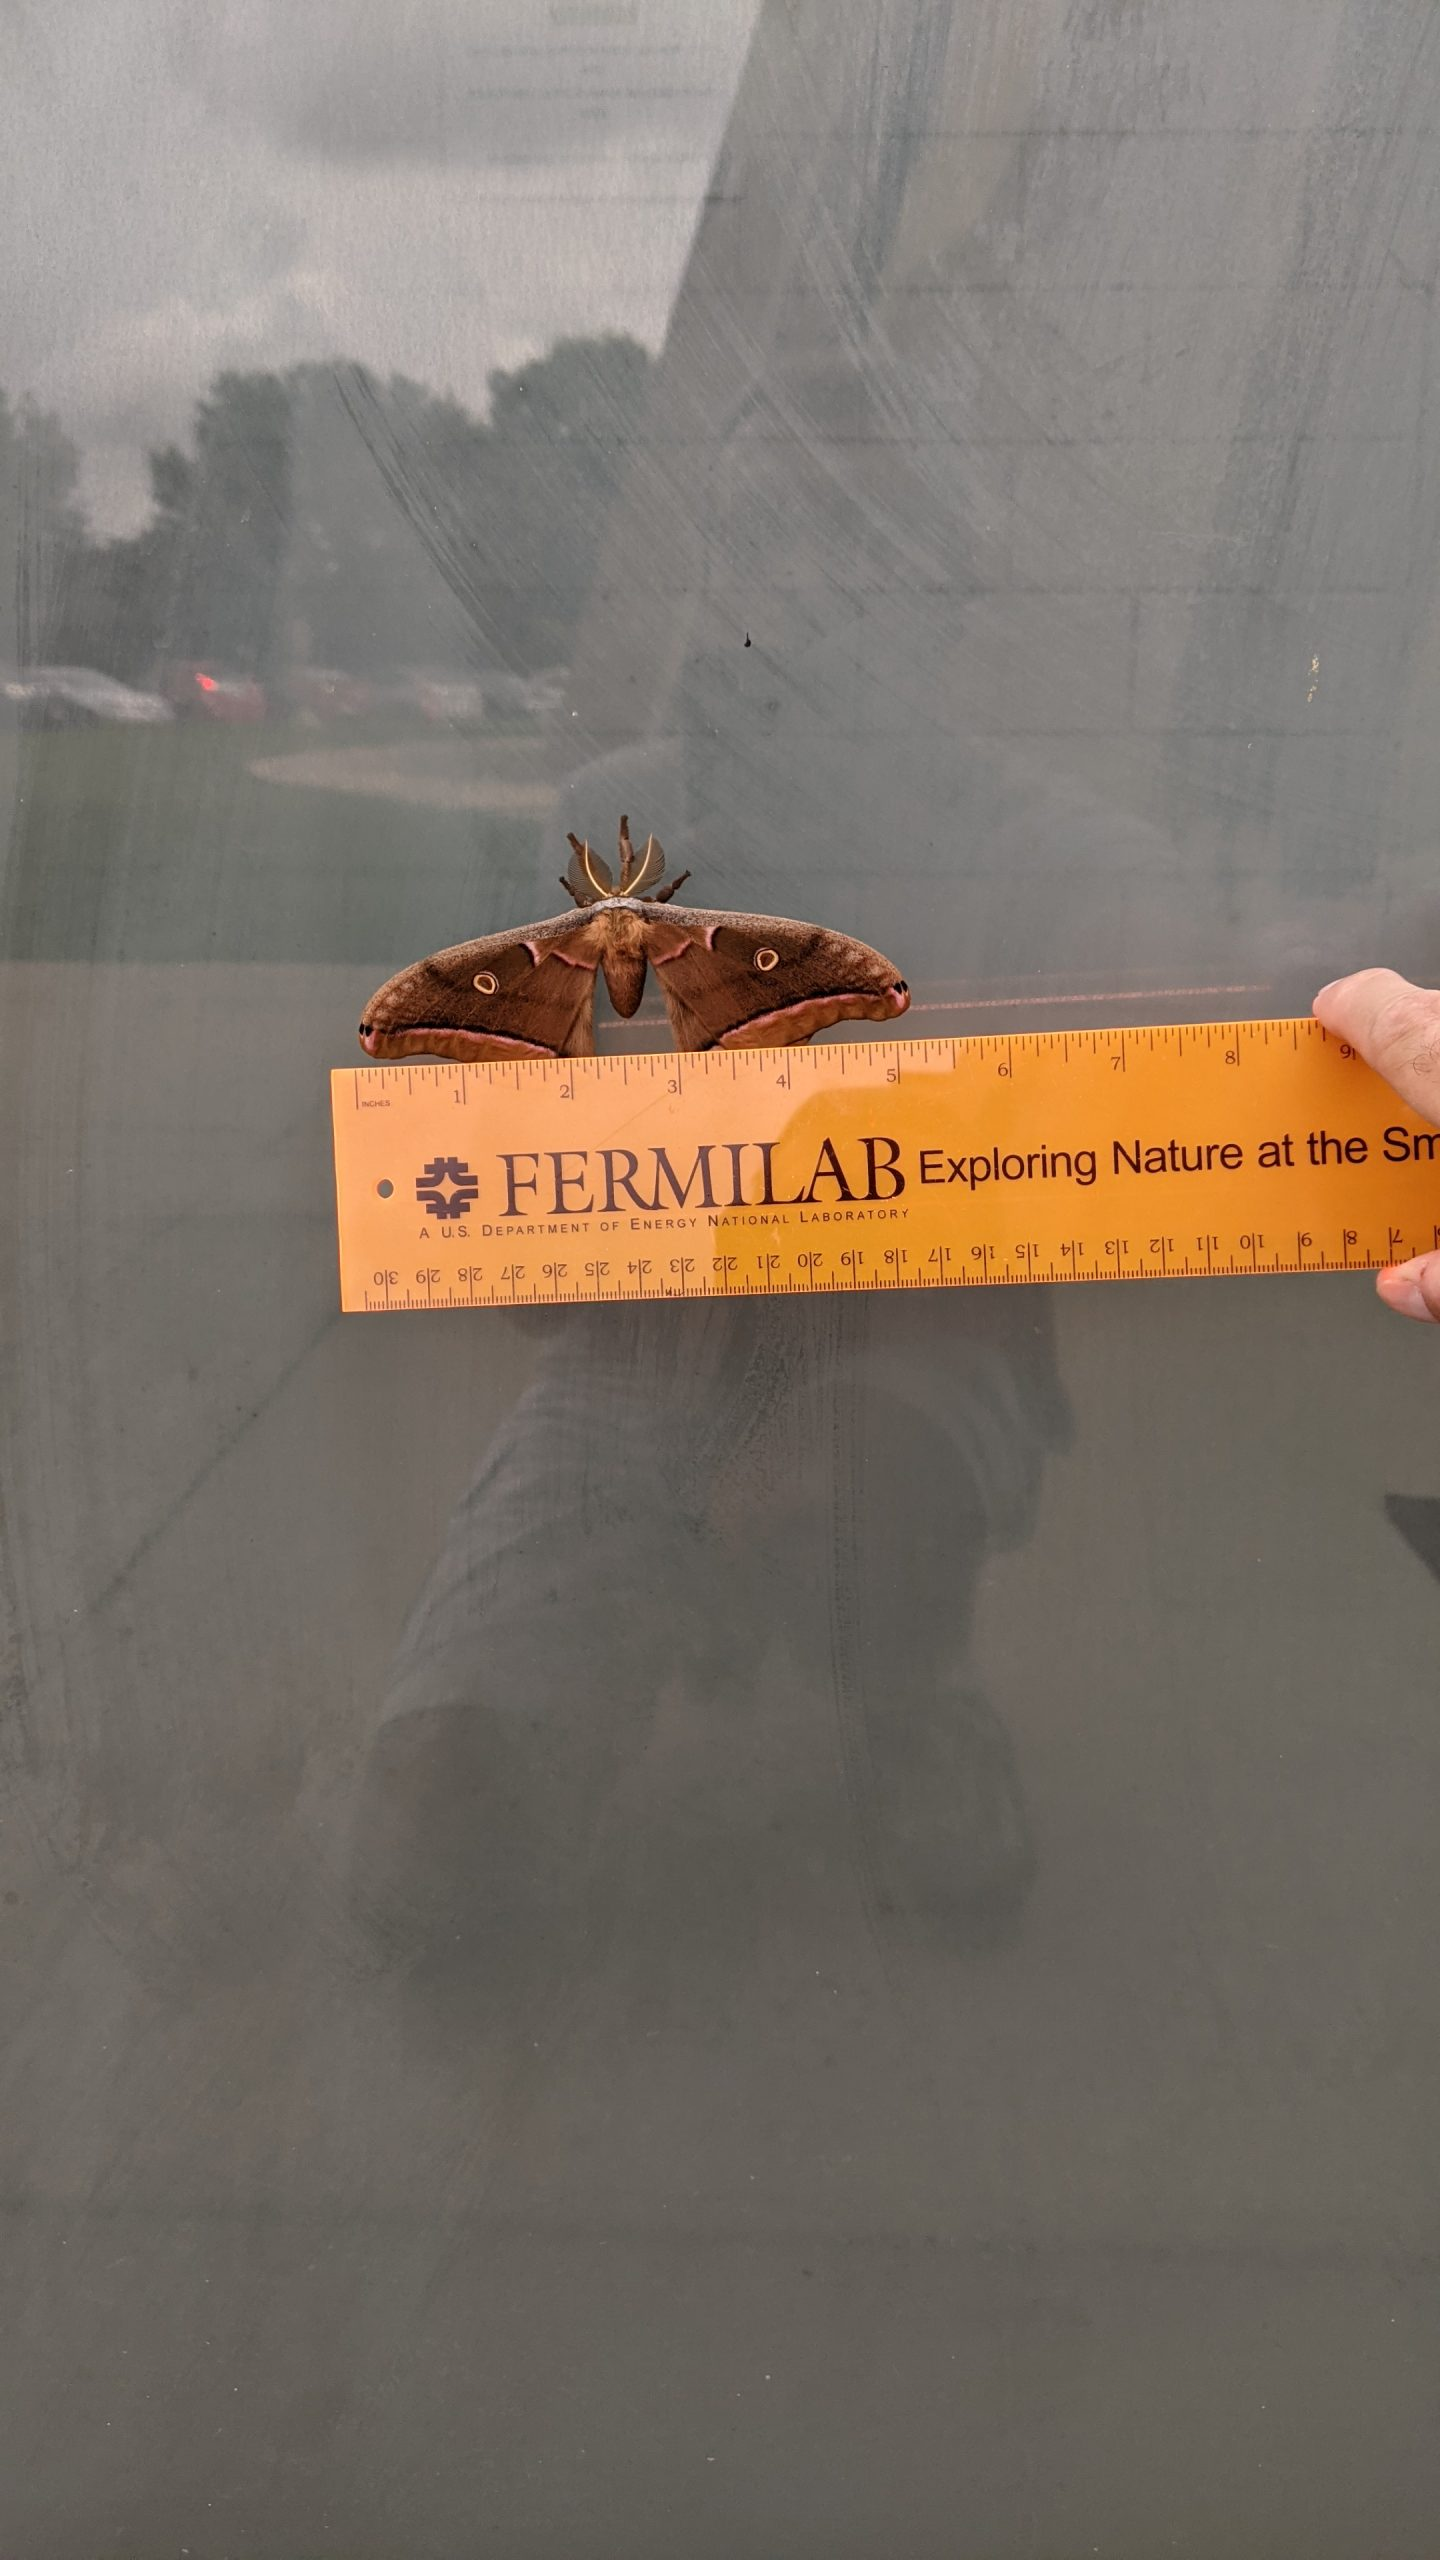 The same moth, from a further distance, with a yellow ruler that reads Fermilab. Reflections of cars and light on the building. The ruler reads the wingspan at about 5 inches.